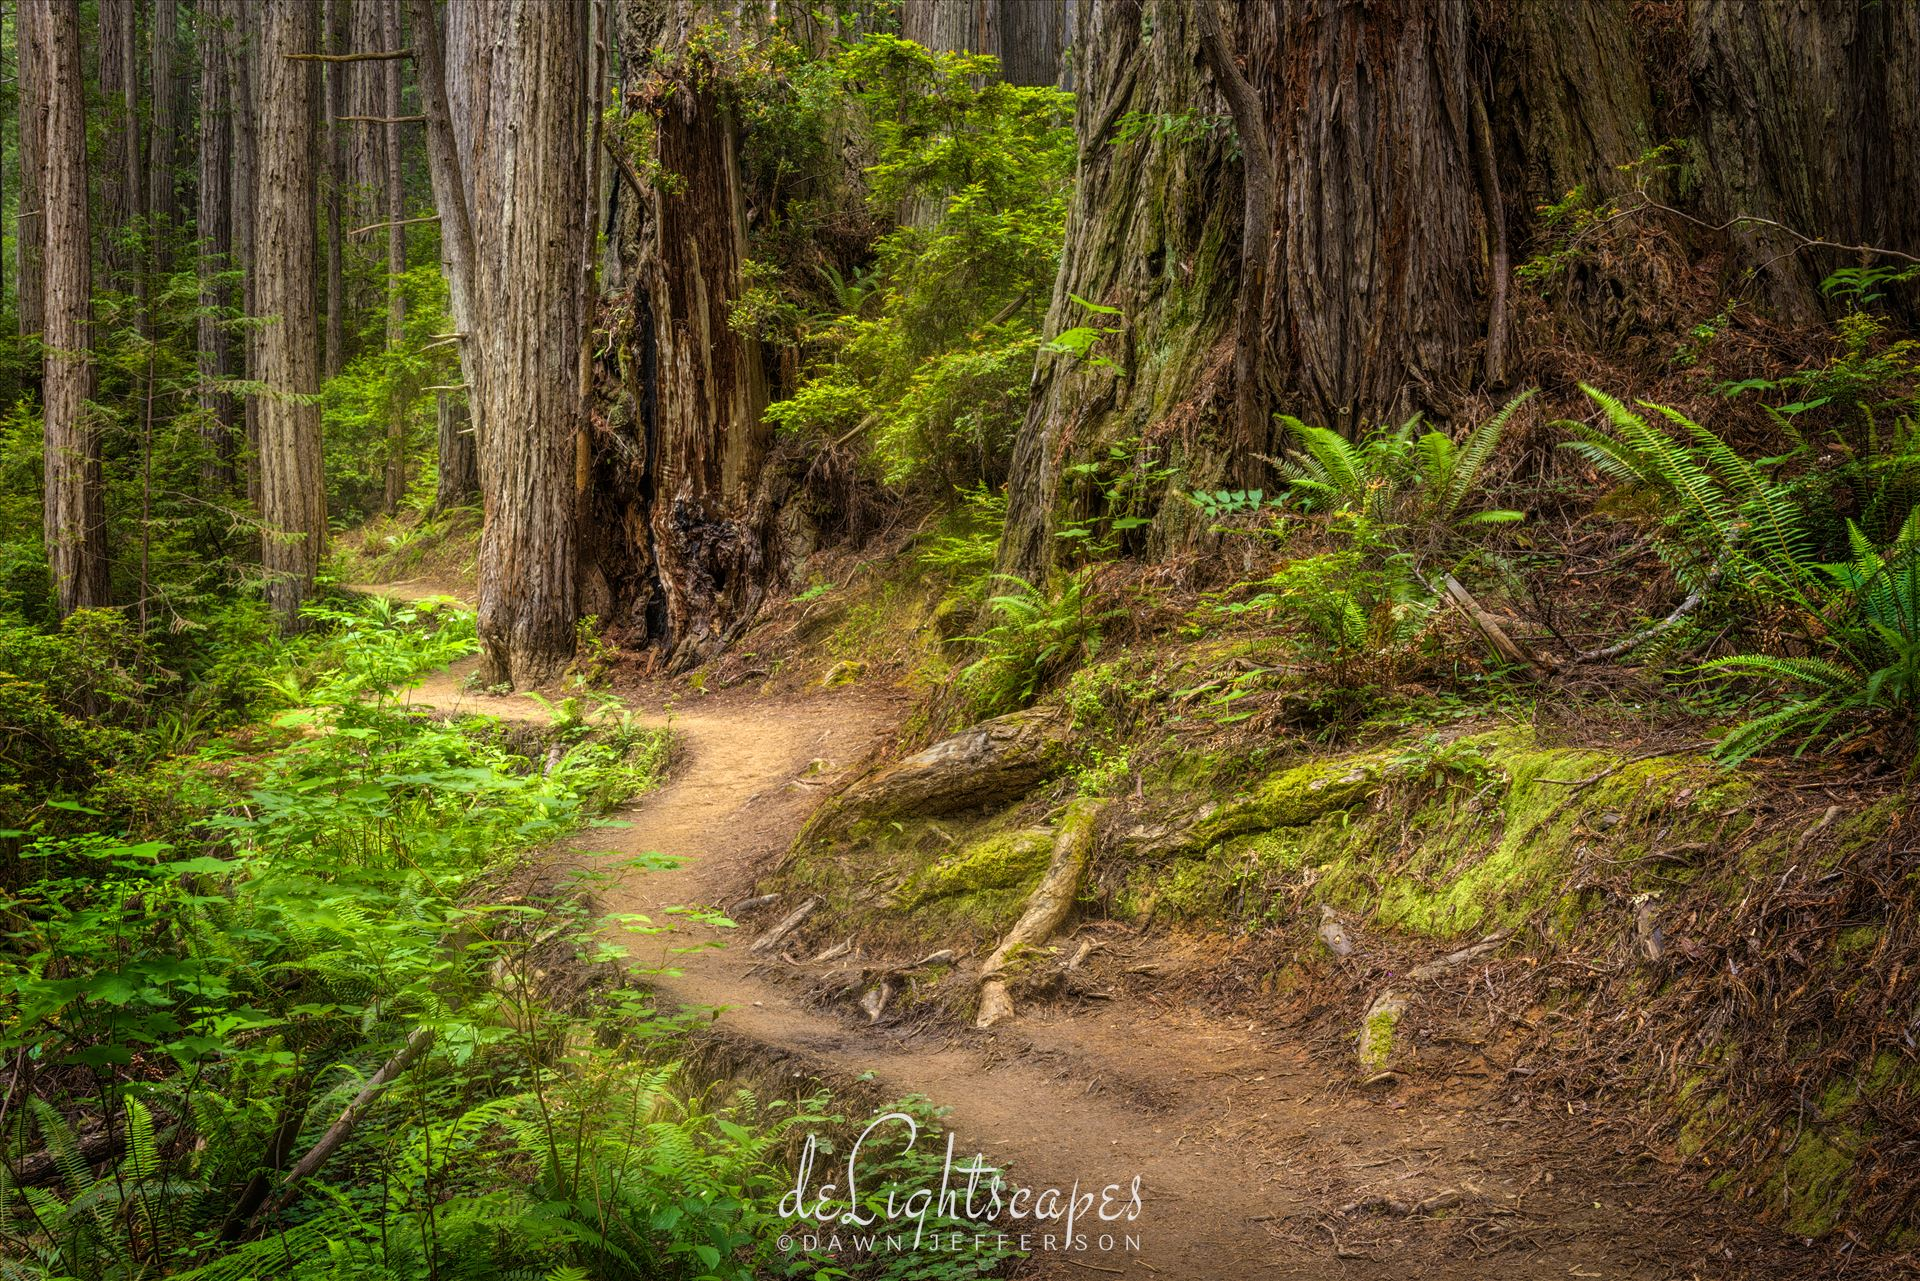 Redwood National Park - Giant ferns and goliath Redwood trees make Redwoods National Park a must visit place at least once in a lifetime. by Dawn Jefferson